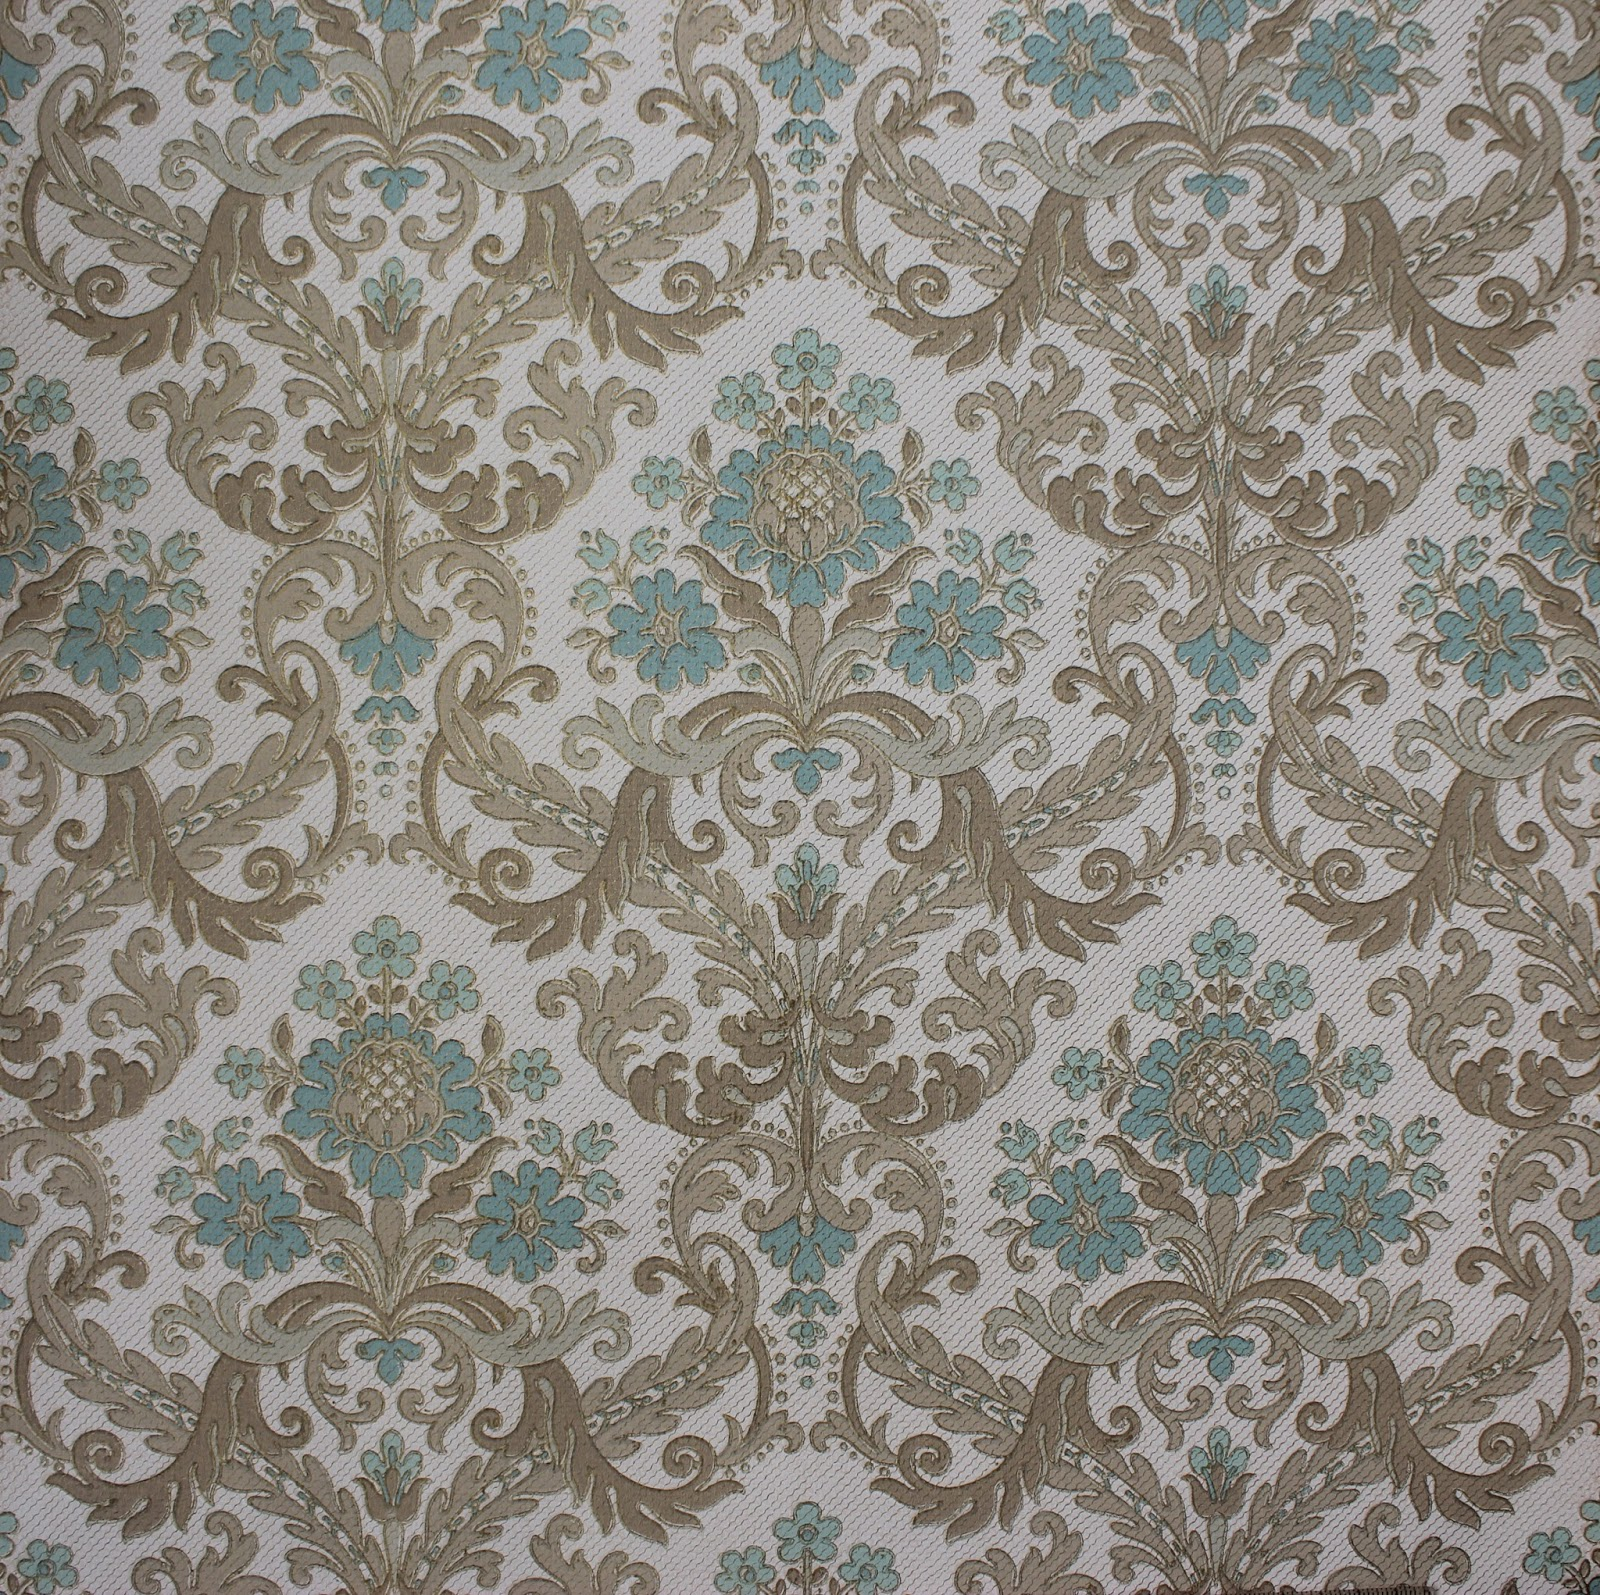 Rosie 39 s vintage wallpaper vintage damask wallpaper etsy for Vintage wallpaper